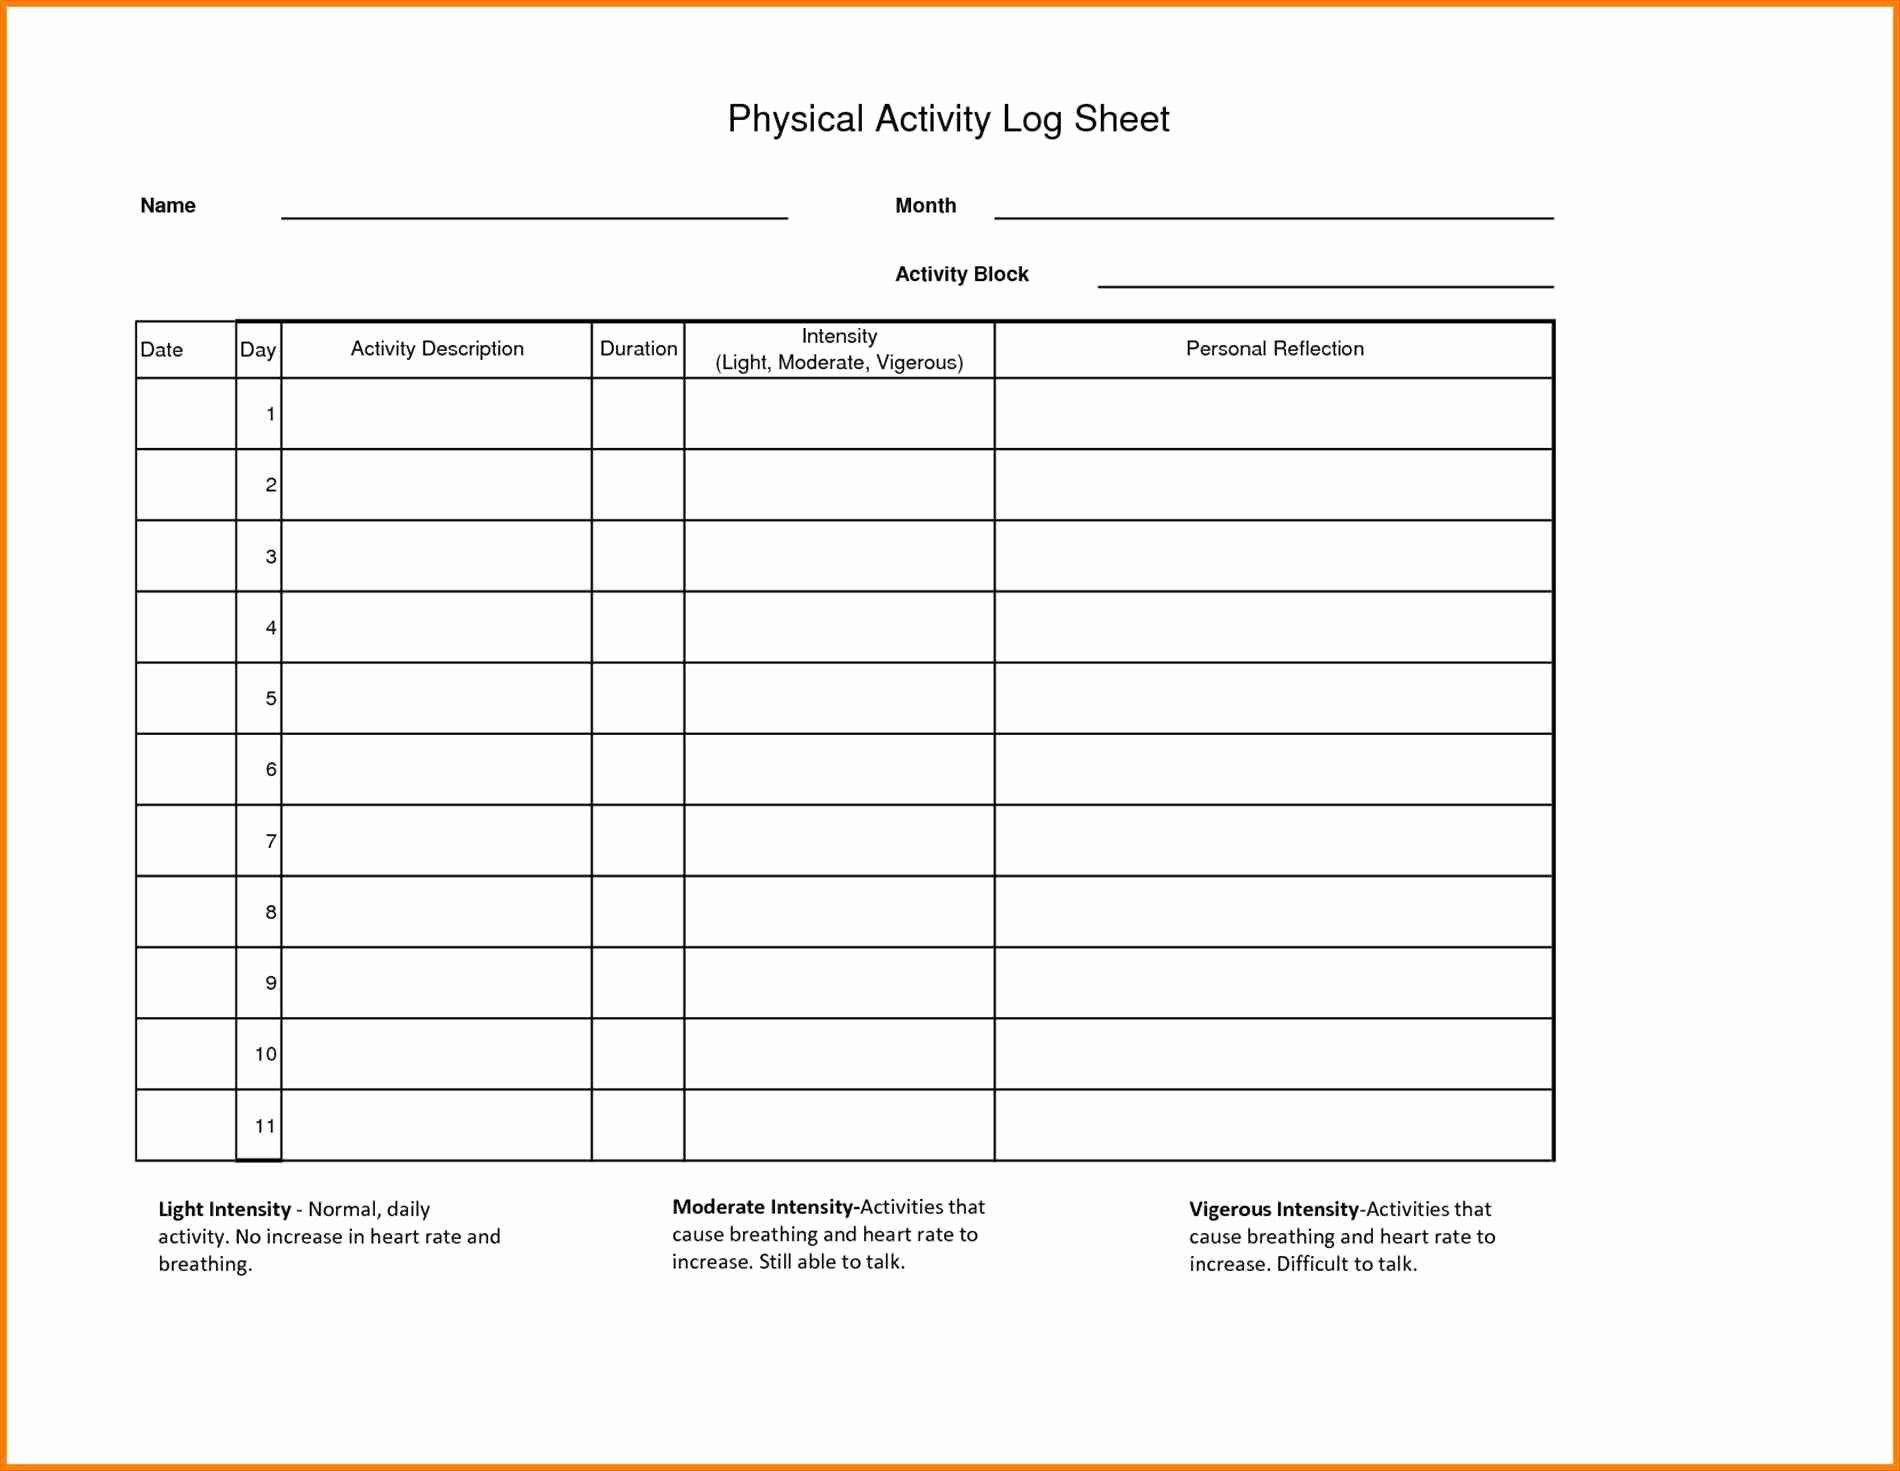 Physical Inventory Count Sheet Templates Best Of Physical Inventory Log Sheet Inventory Count Sheet – Tmplts